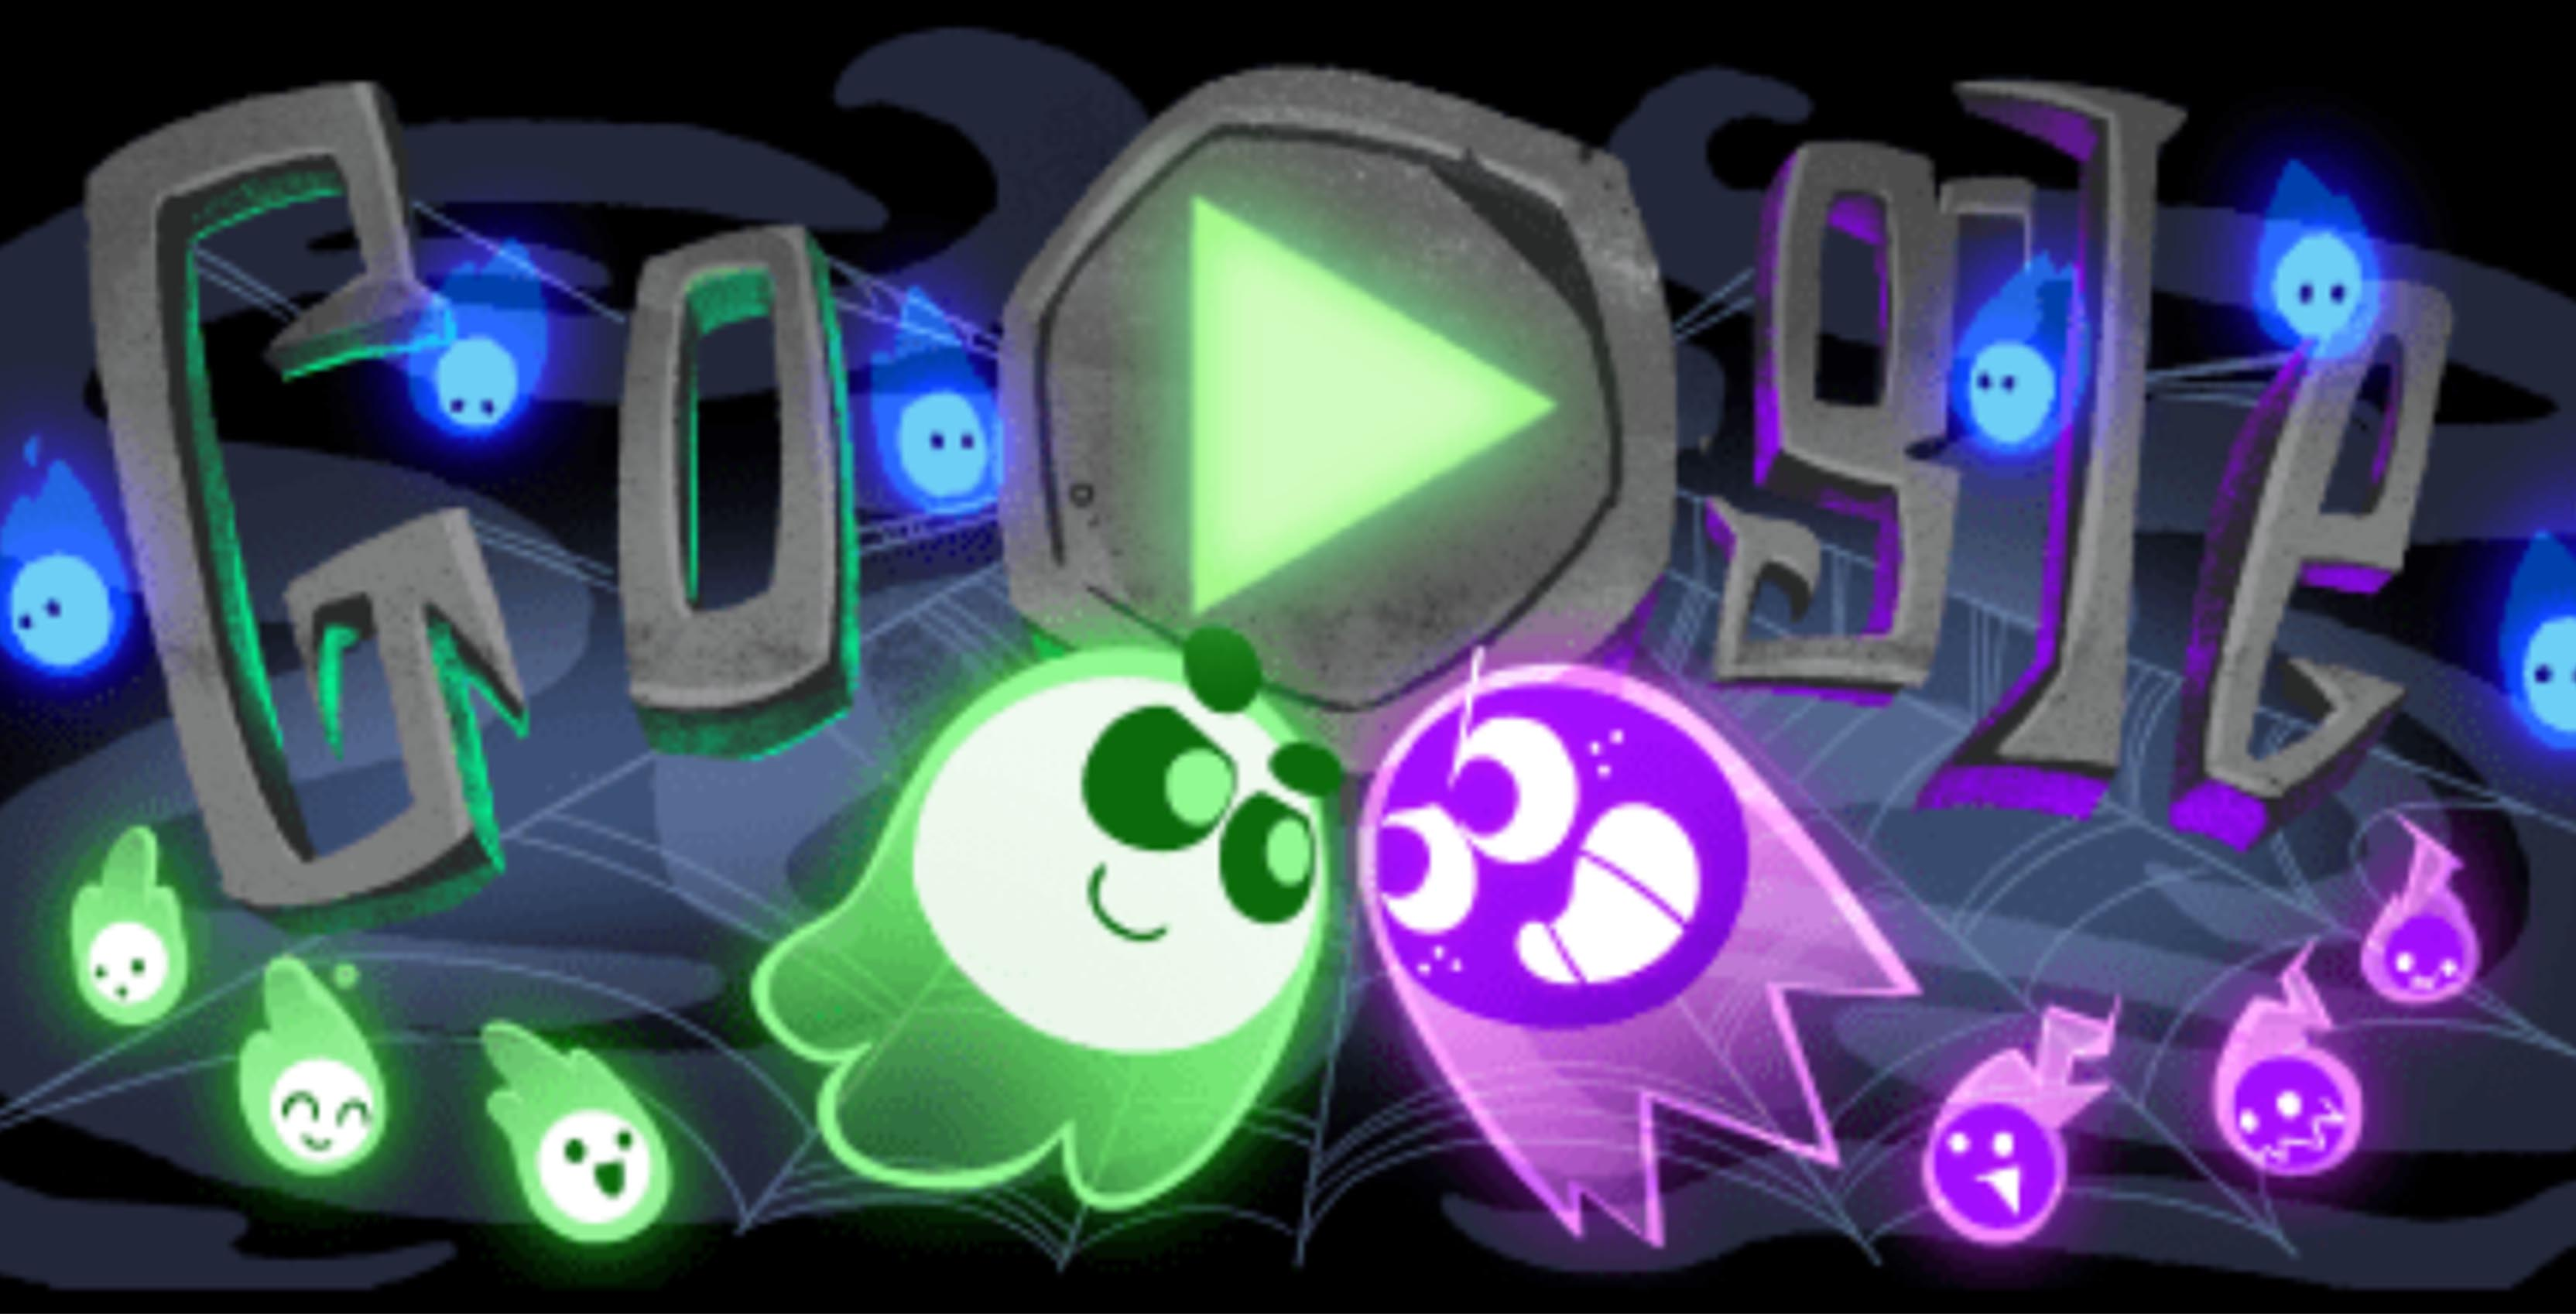 Google's latest Doodle celebrates Halloween as a multiplayer game